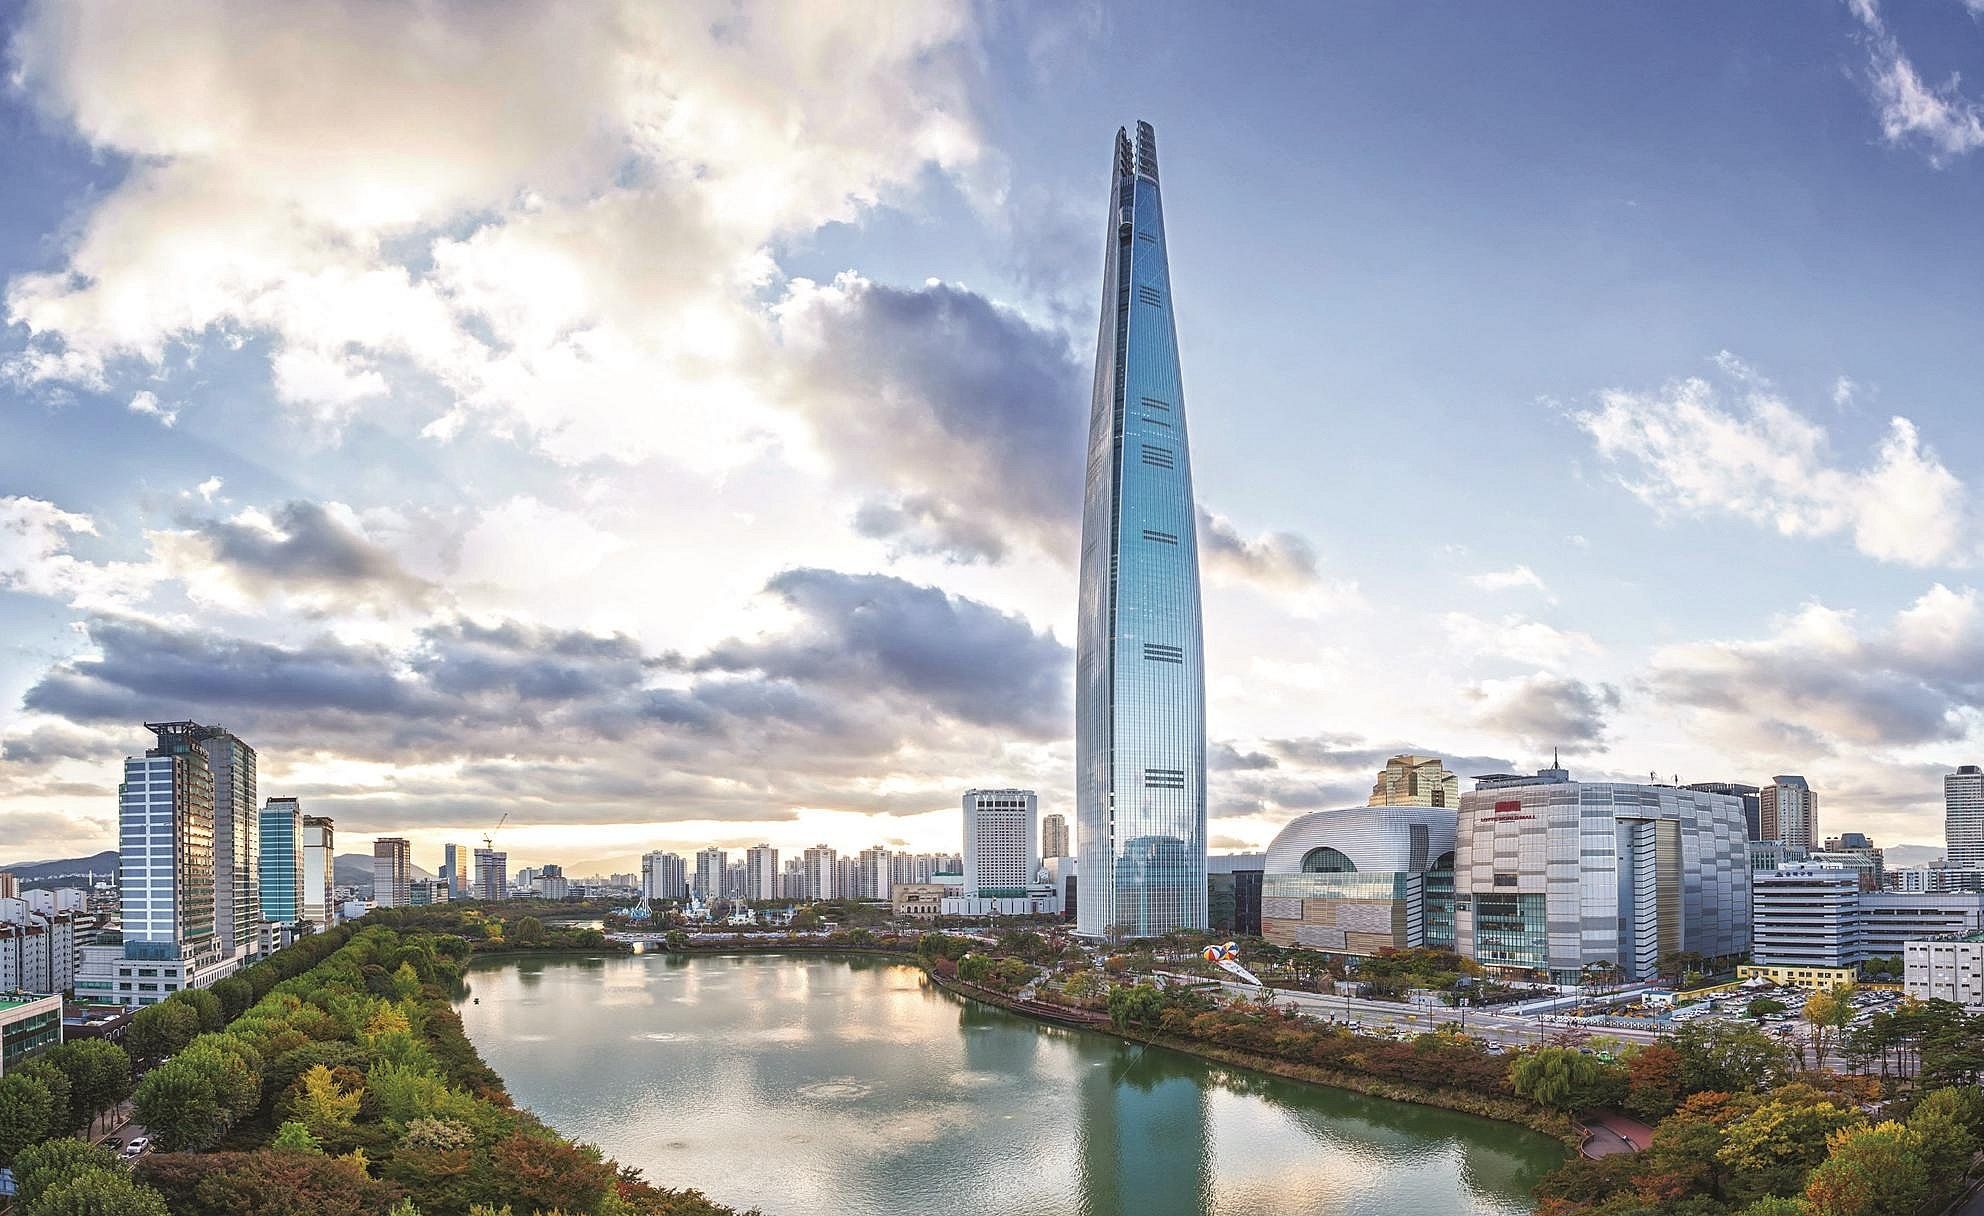 Exterior view: located along the riverside, the Lotte Tower soars like a spaceship up into the sky